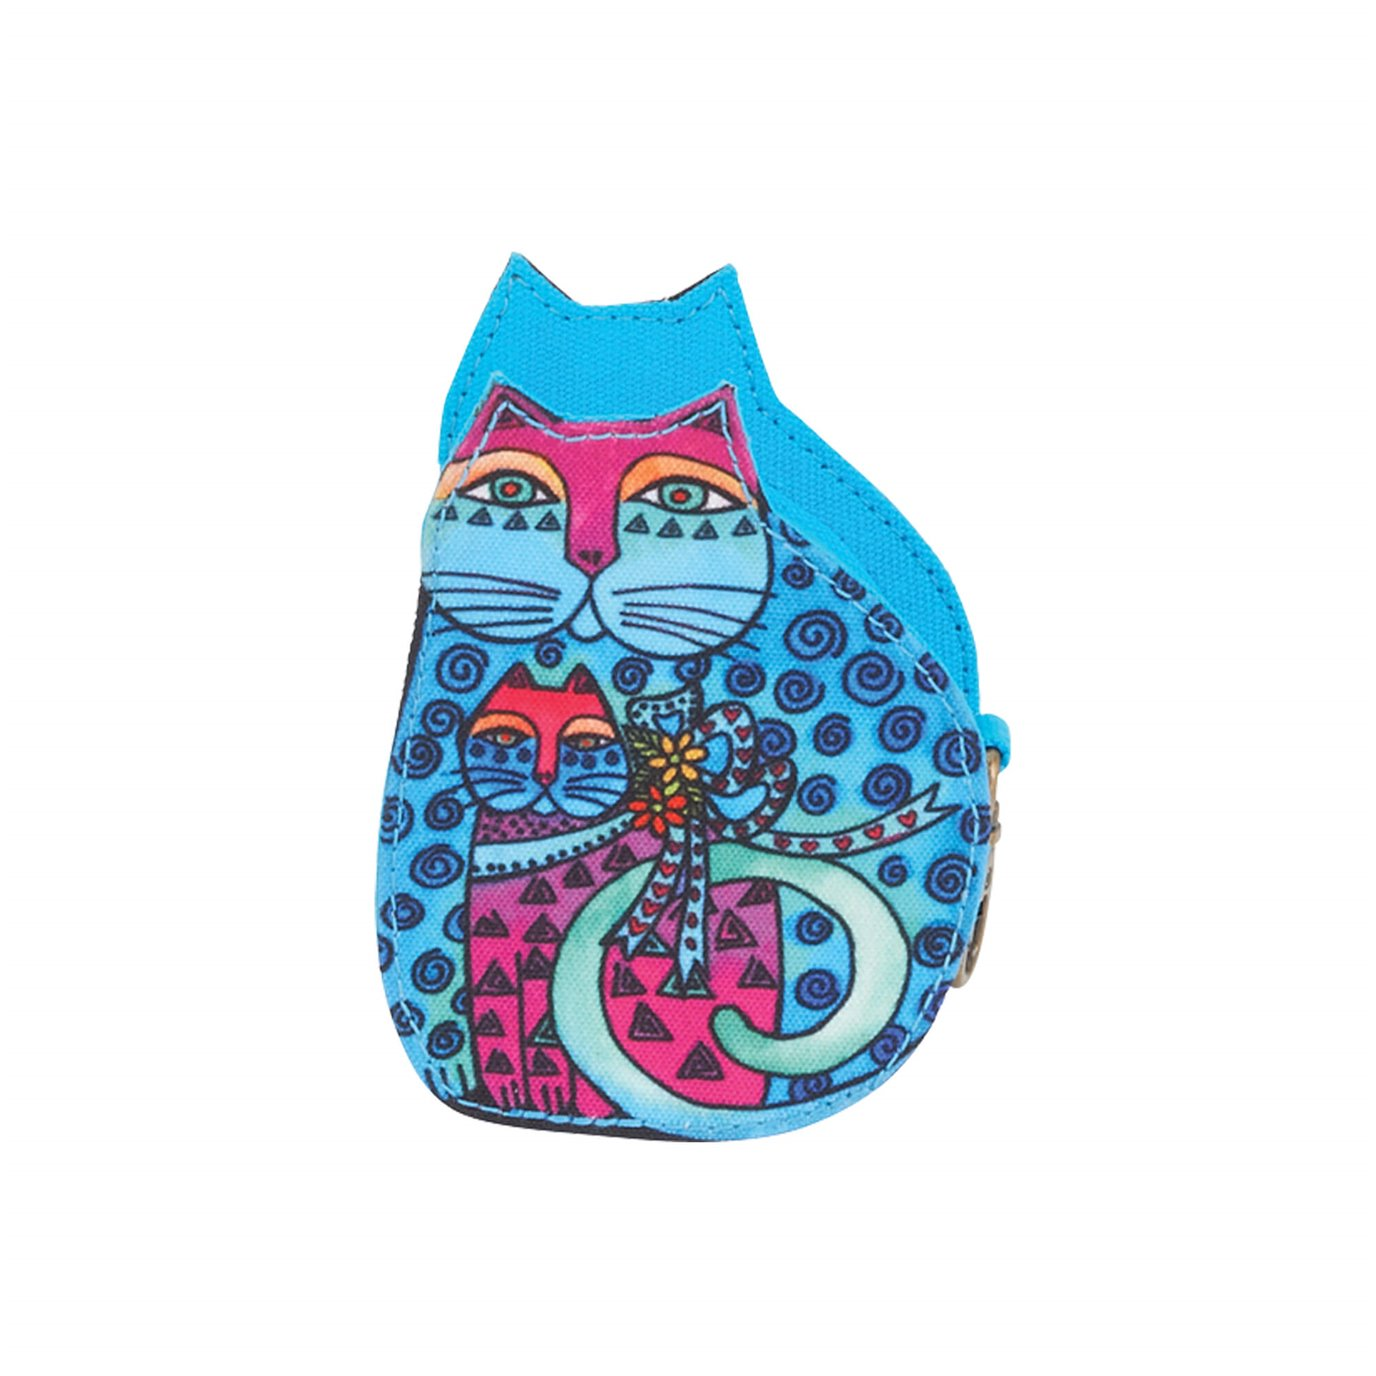 Laurel Burch Mother Daughter Cat Coin Purse - turquoise